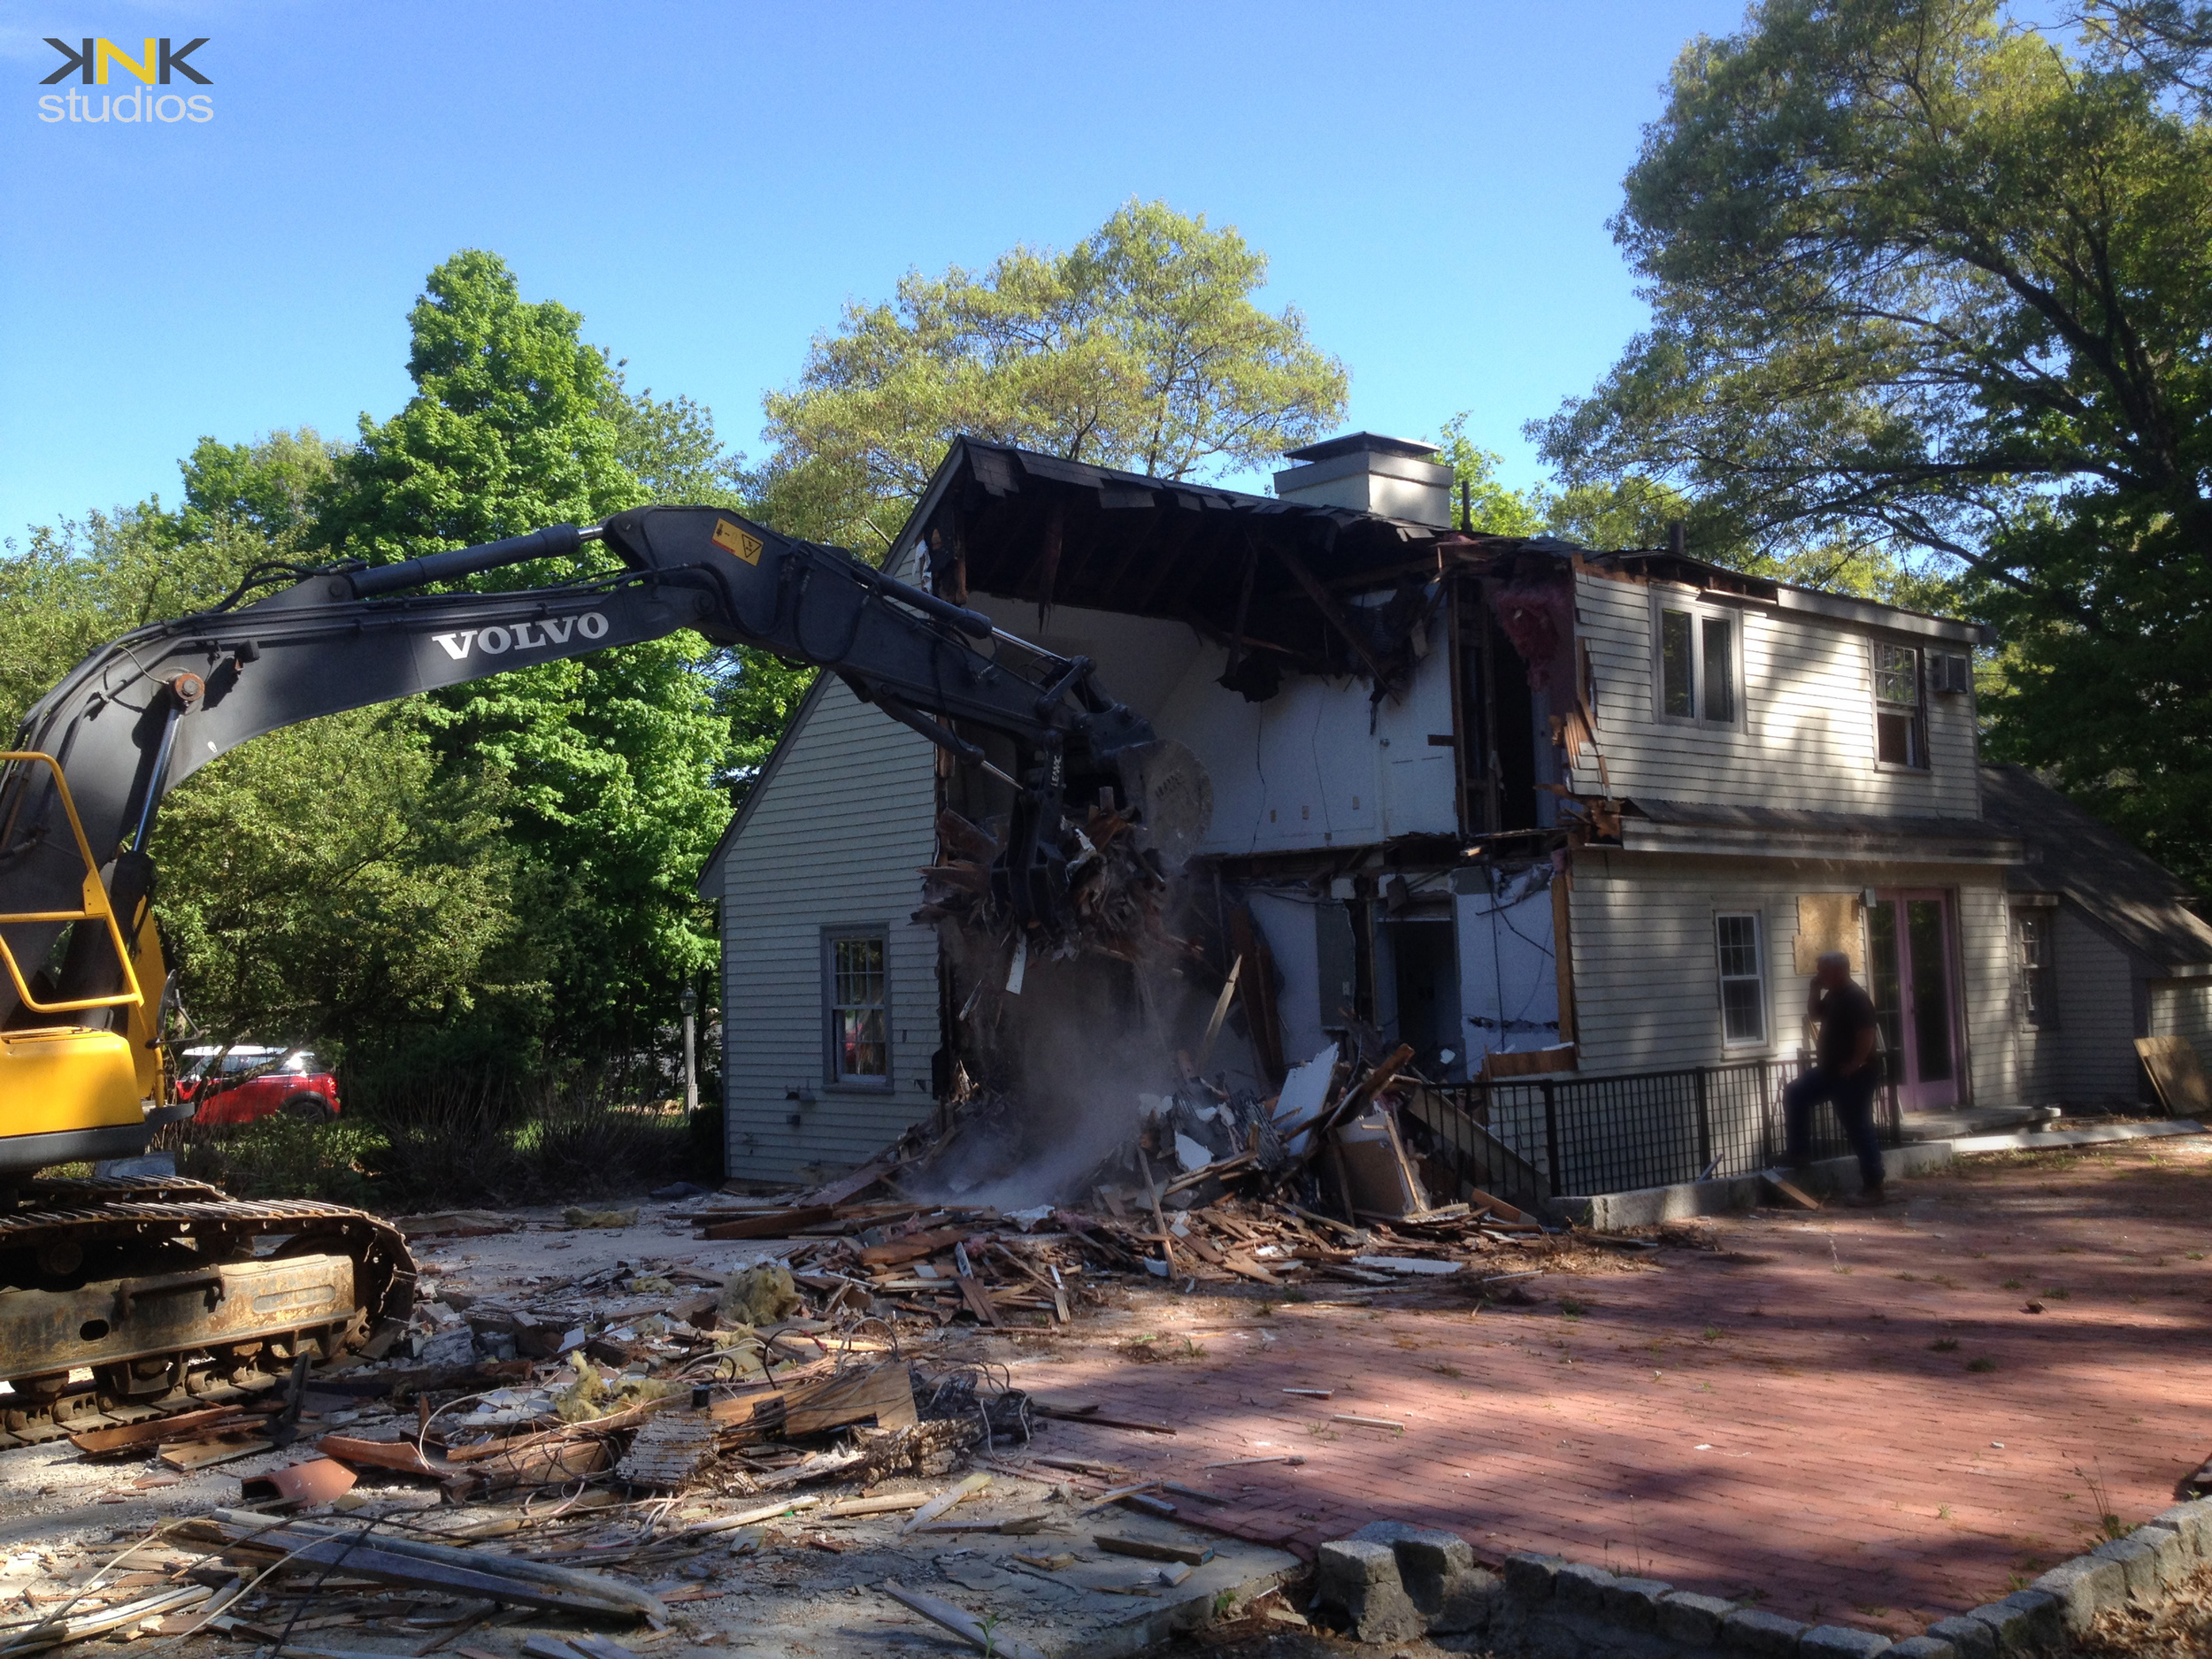 Demolition of the old existing house